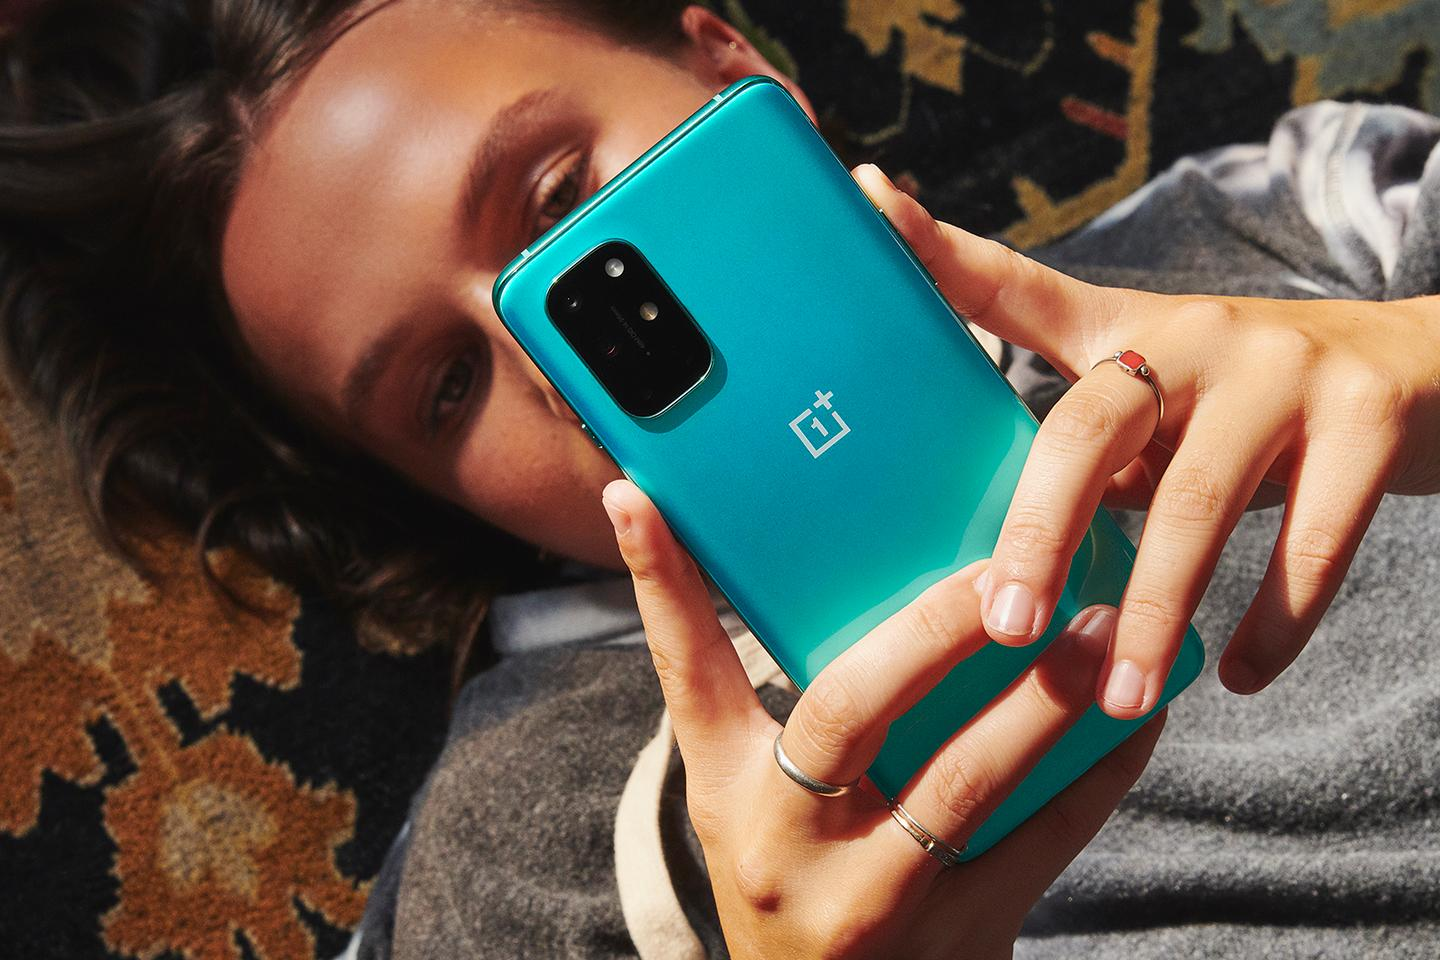 The OnePlus 8T is the last major phone launch of the year from OnePlus